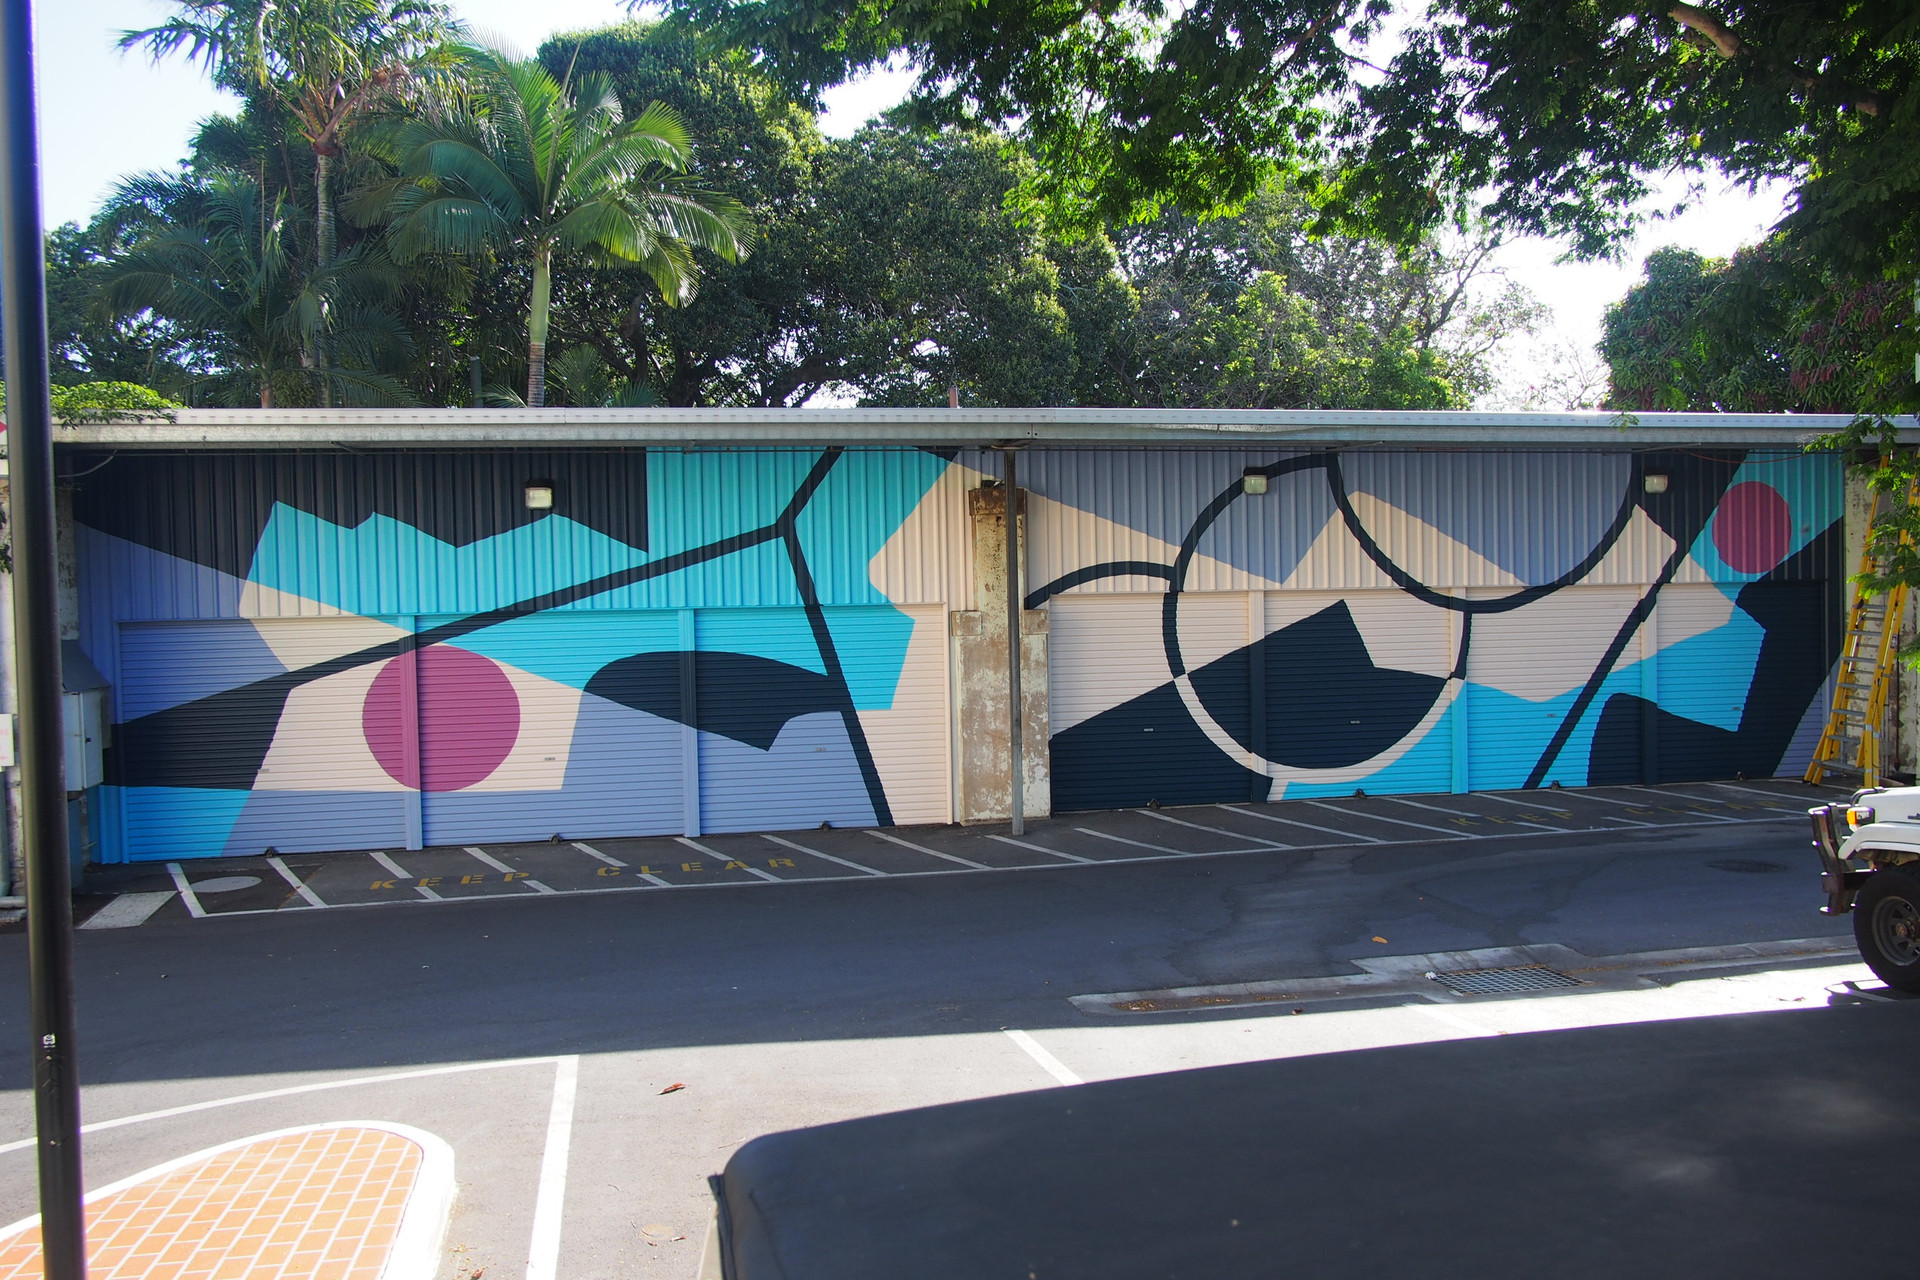 Mural in support of SURFACE TENSION exhibition at the Brisbane Powerhouse, investigating themes of separation and confinement, 25m x 6m